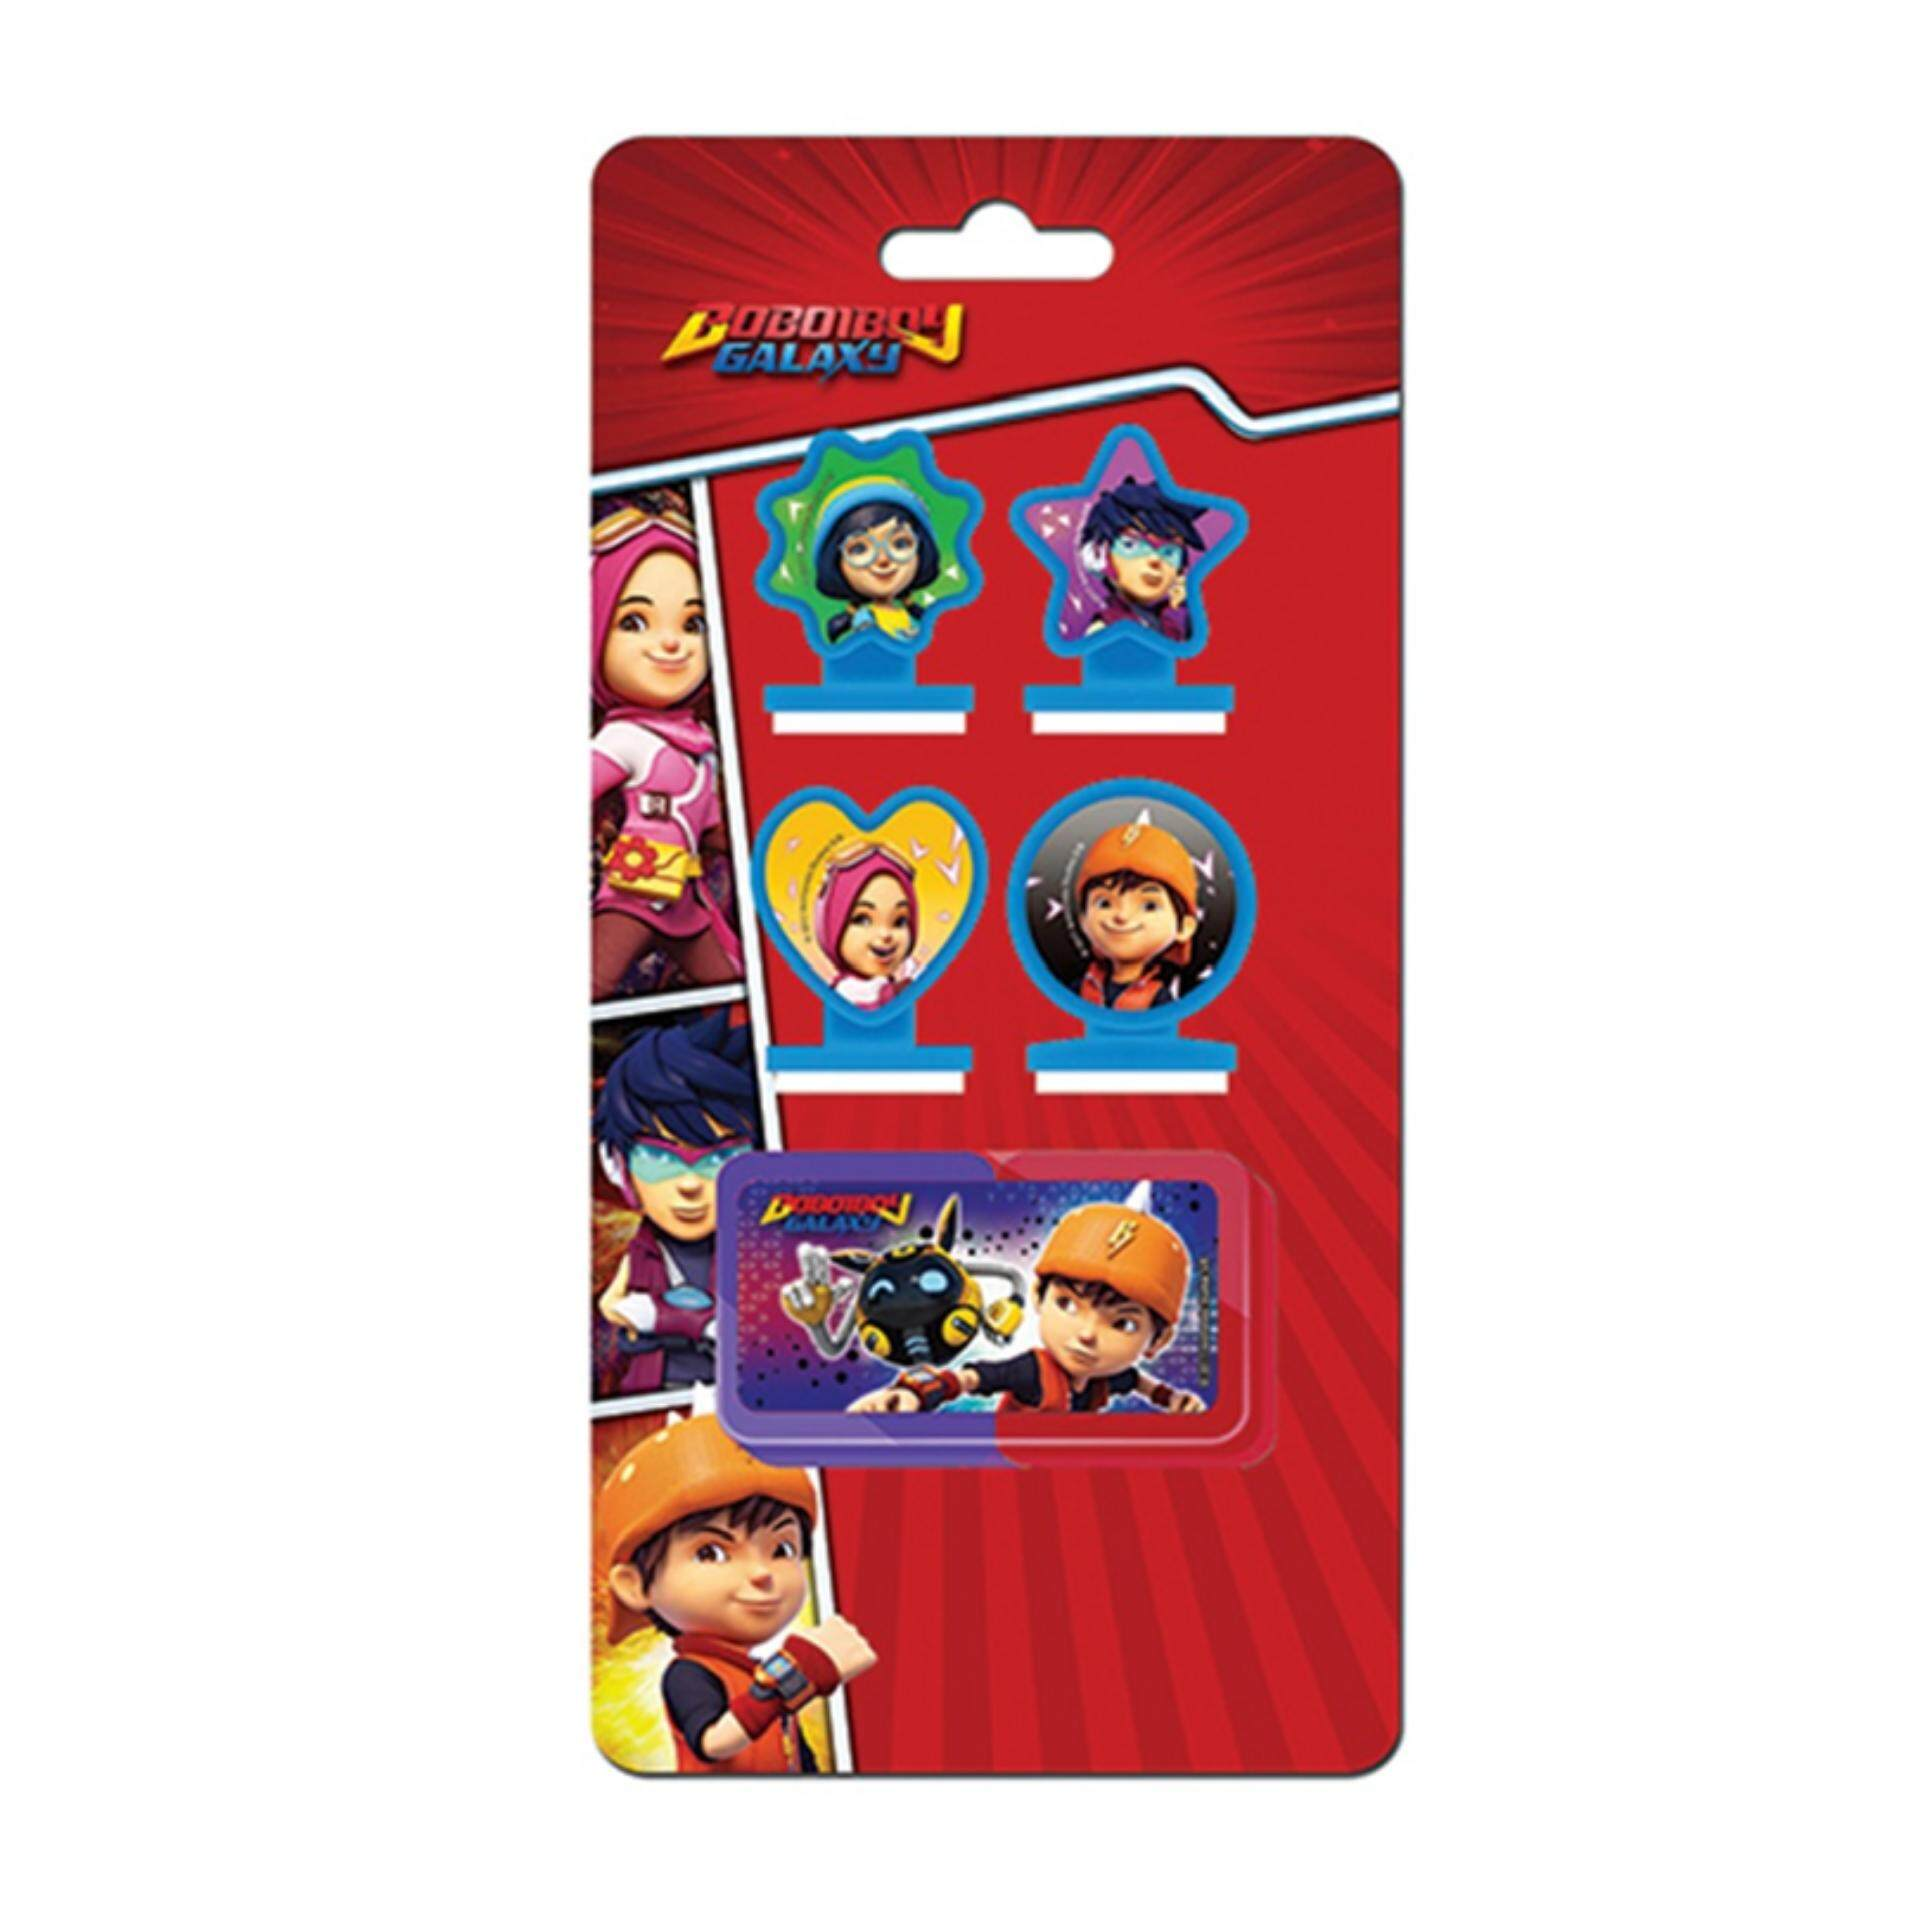 BoBoiBoy Galaxy Stamper Set - Red Colour